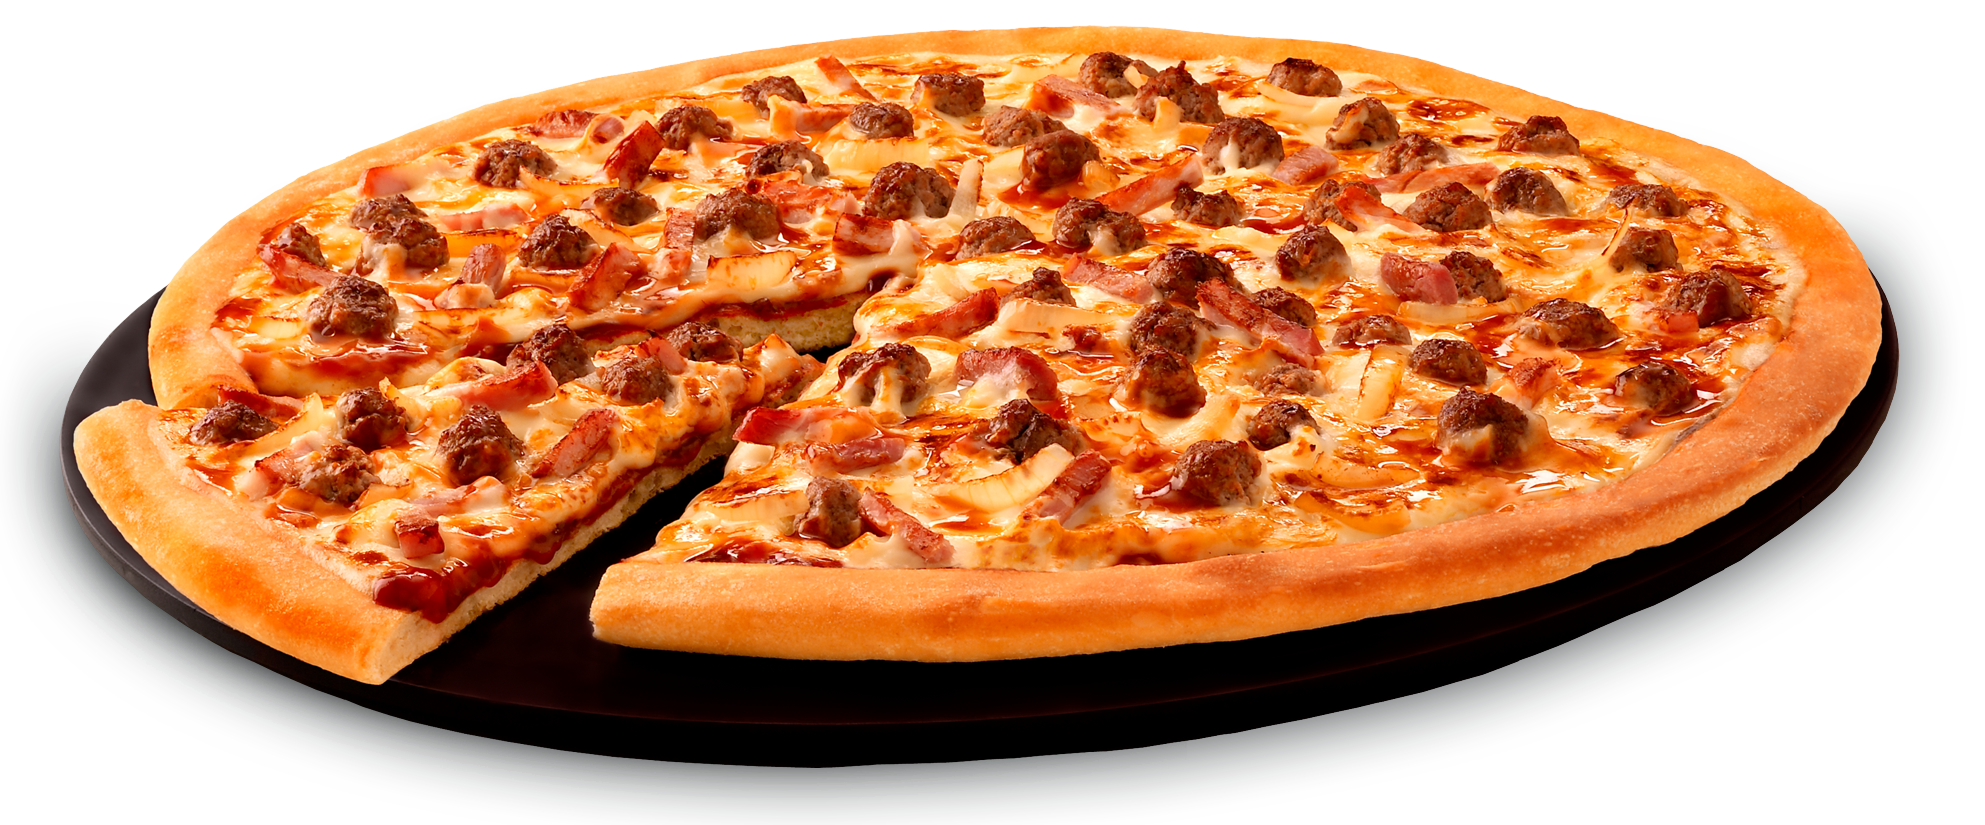 Pizza clipart margherita pizza. Png images free download